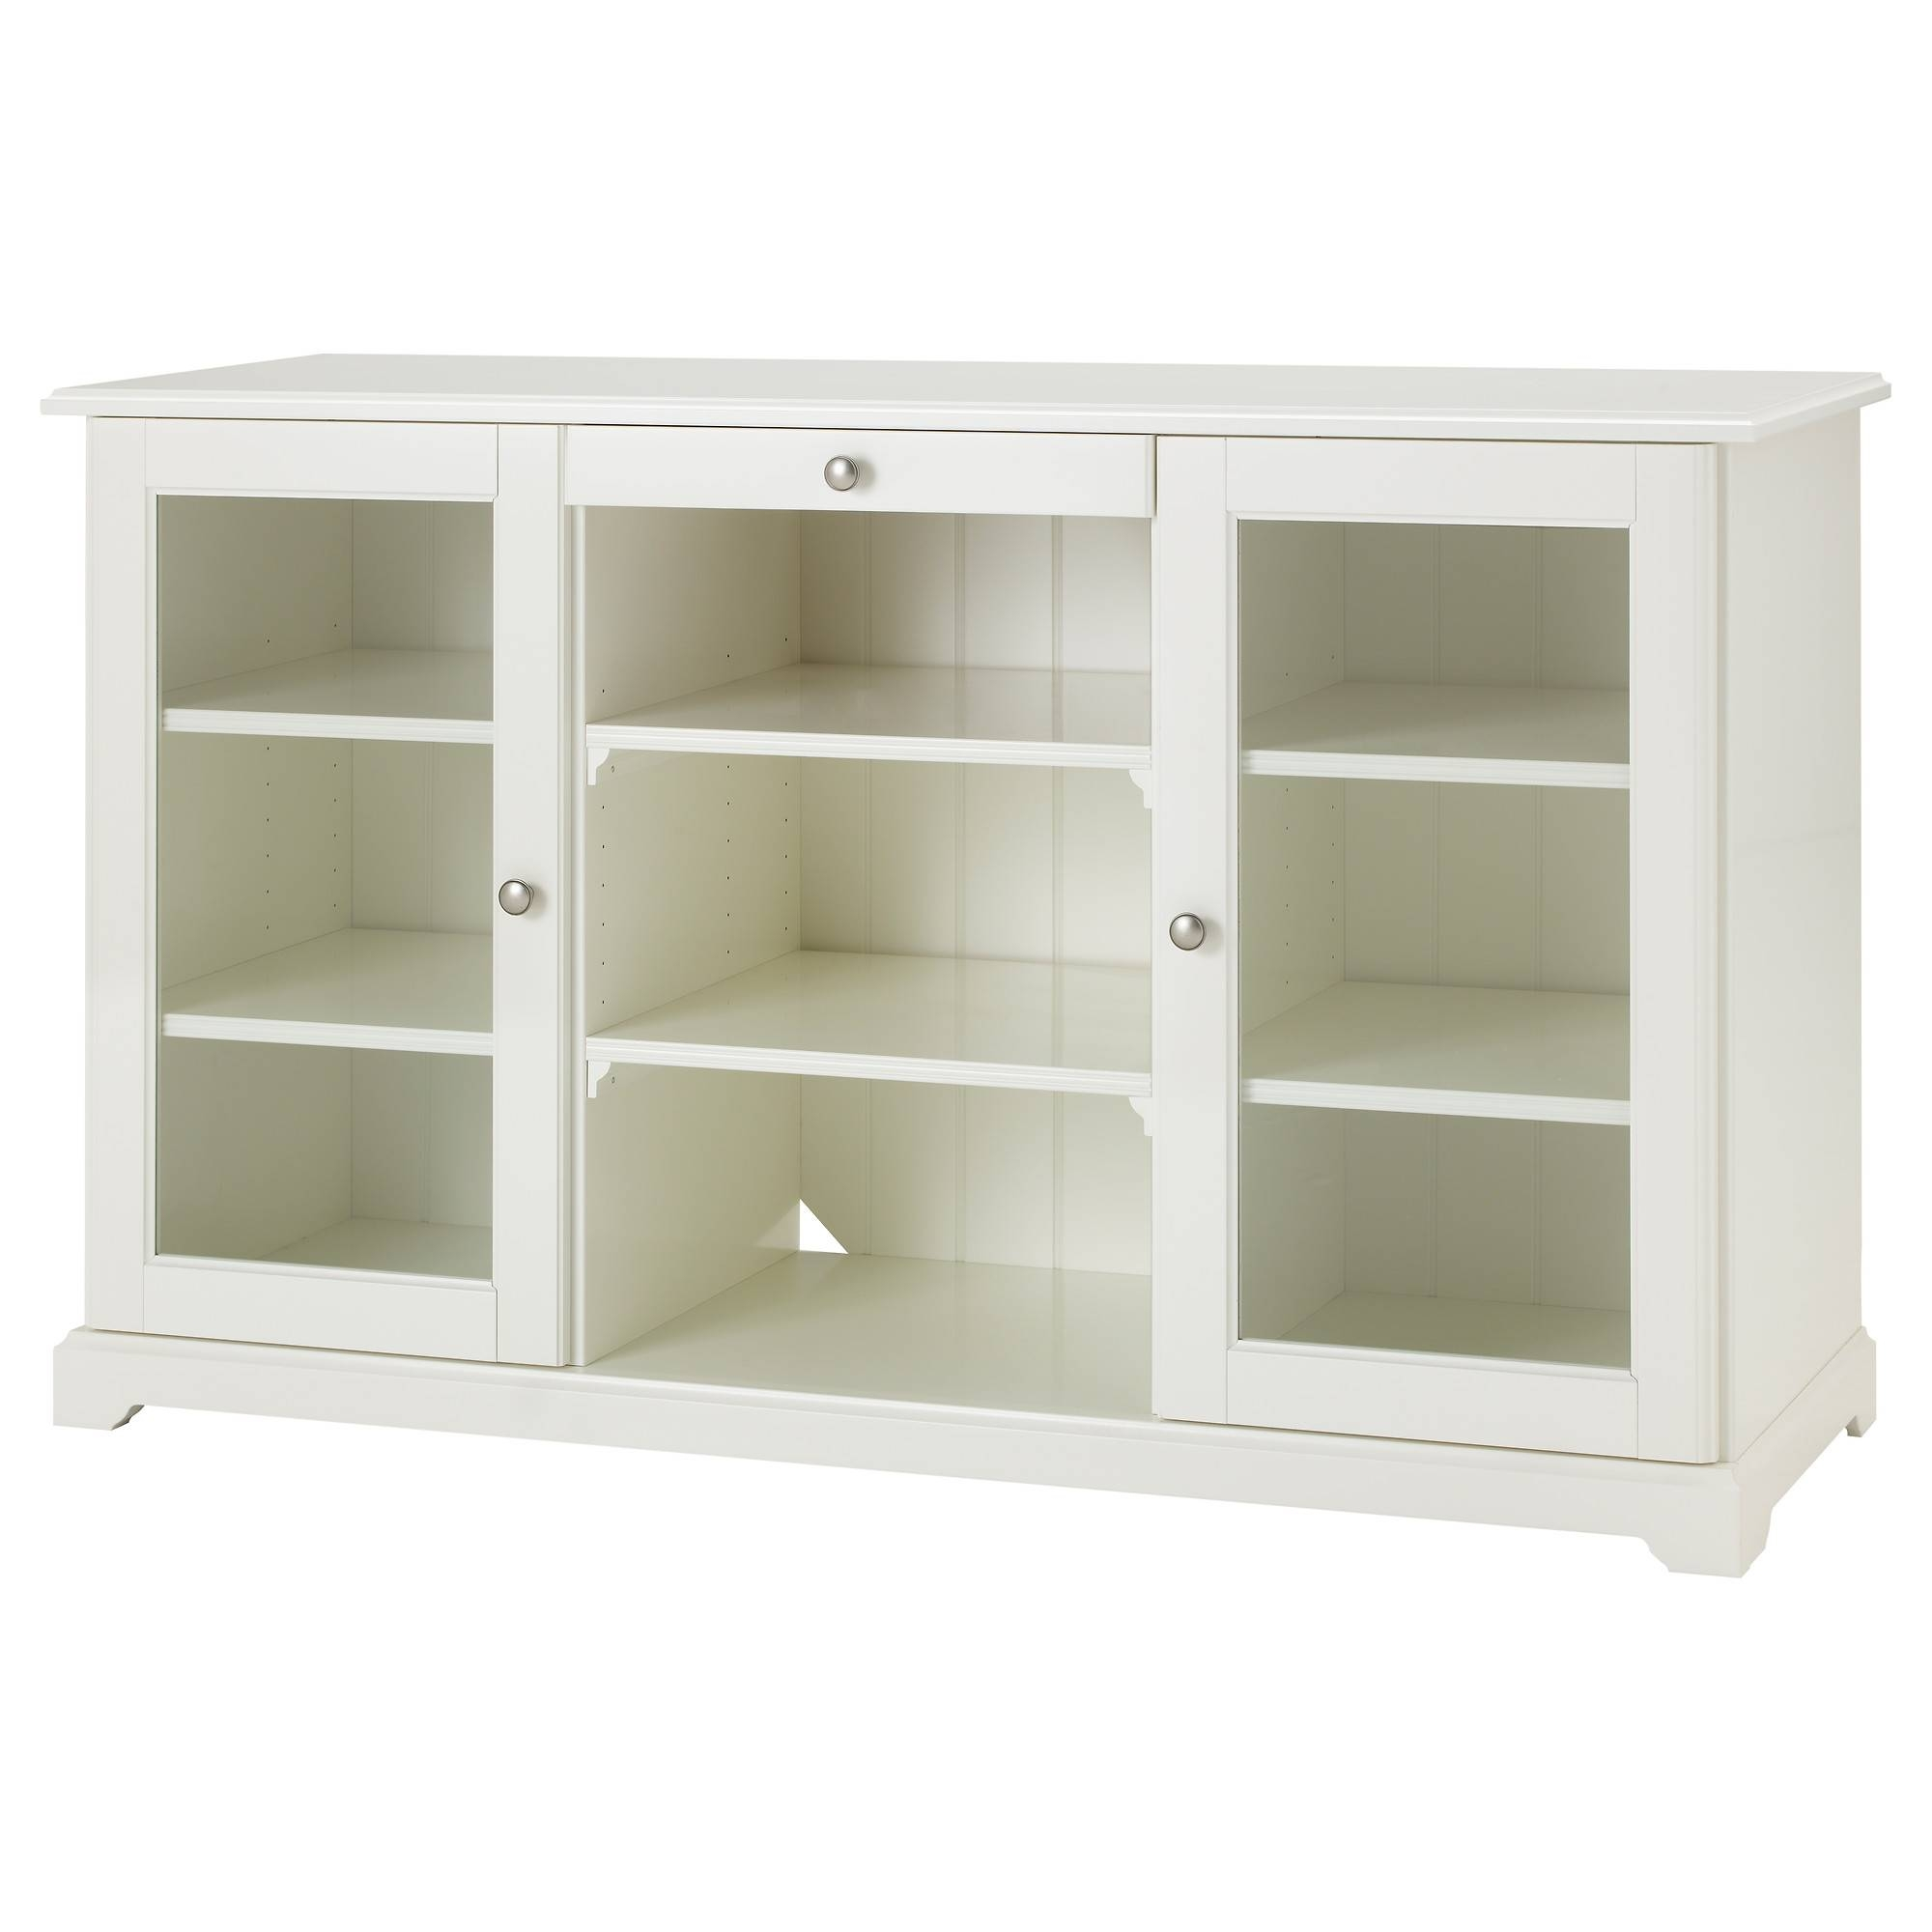 Liatorp Sideboard - White - Ikea with regard to Glass Door Buffet Sideboards (Image 11 of 15)